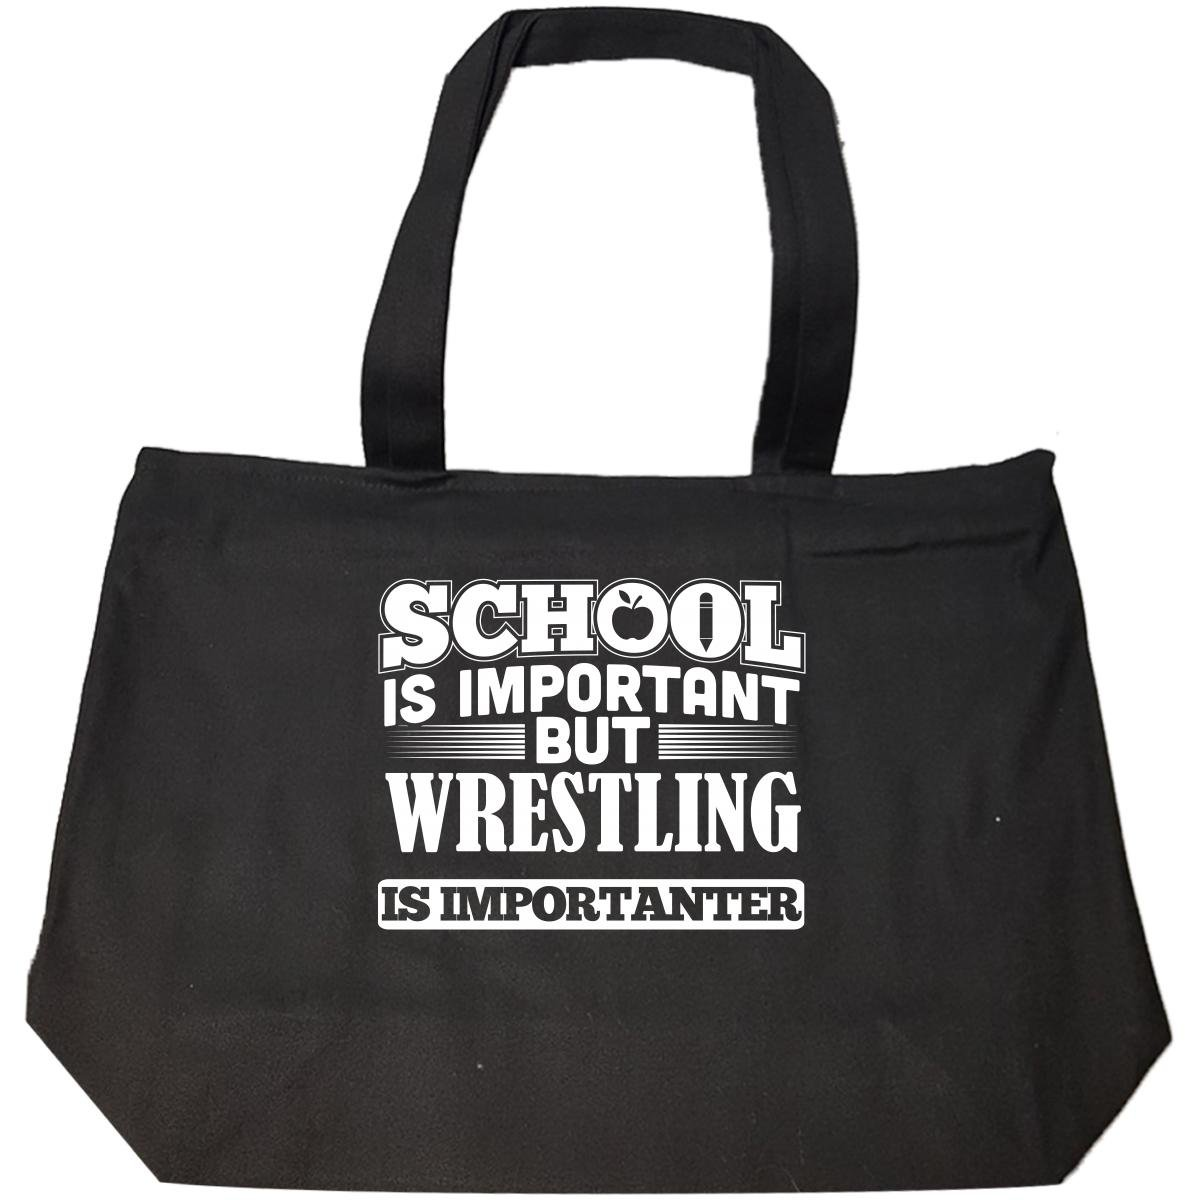 School Is Important But Wrestling Is Importanter - Tote Bag With Zip by Brands Banned